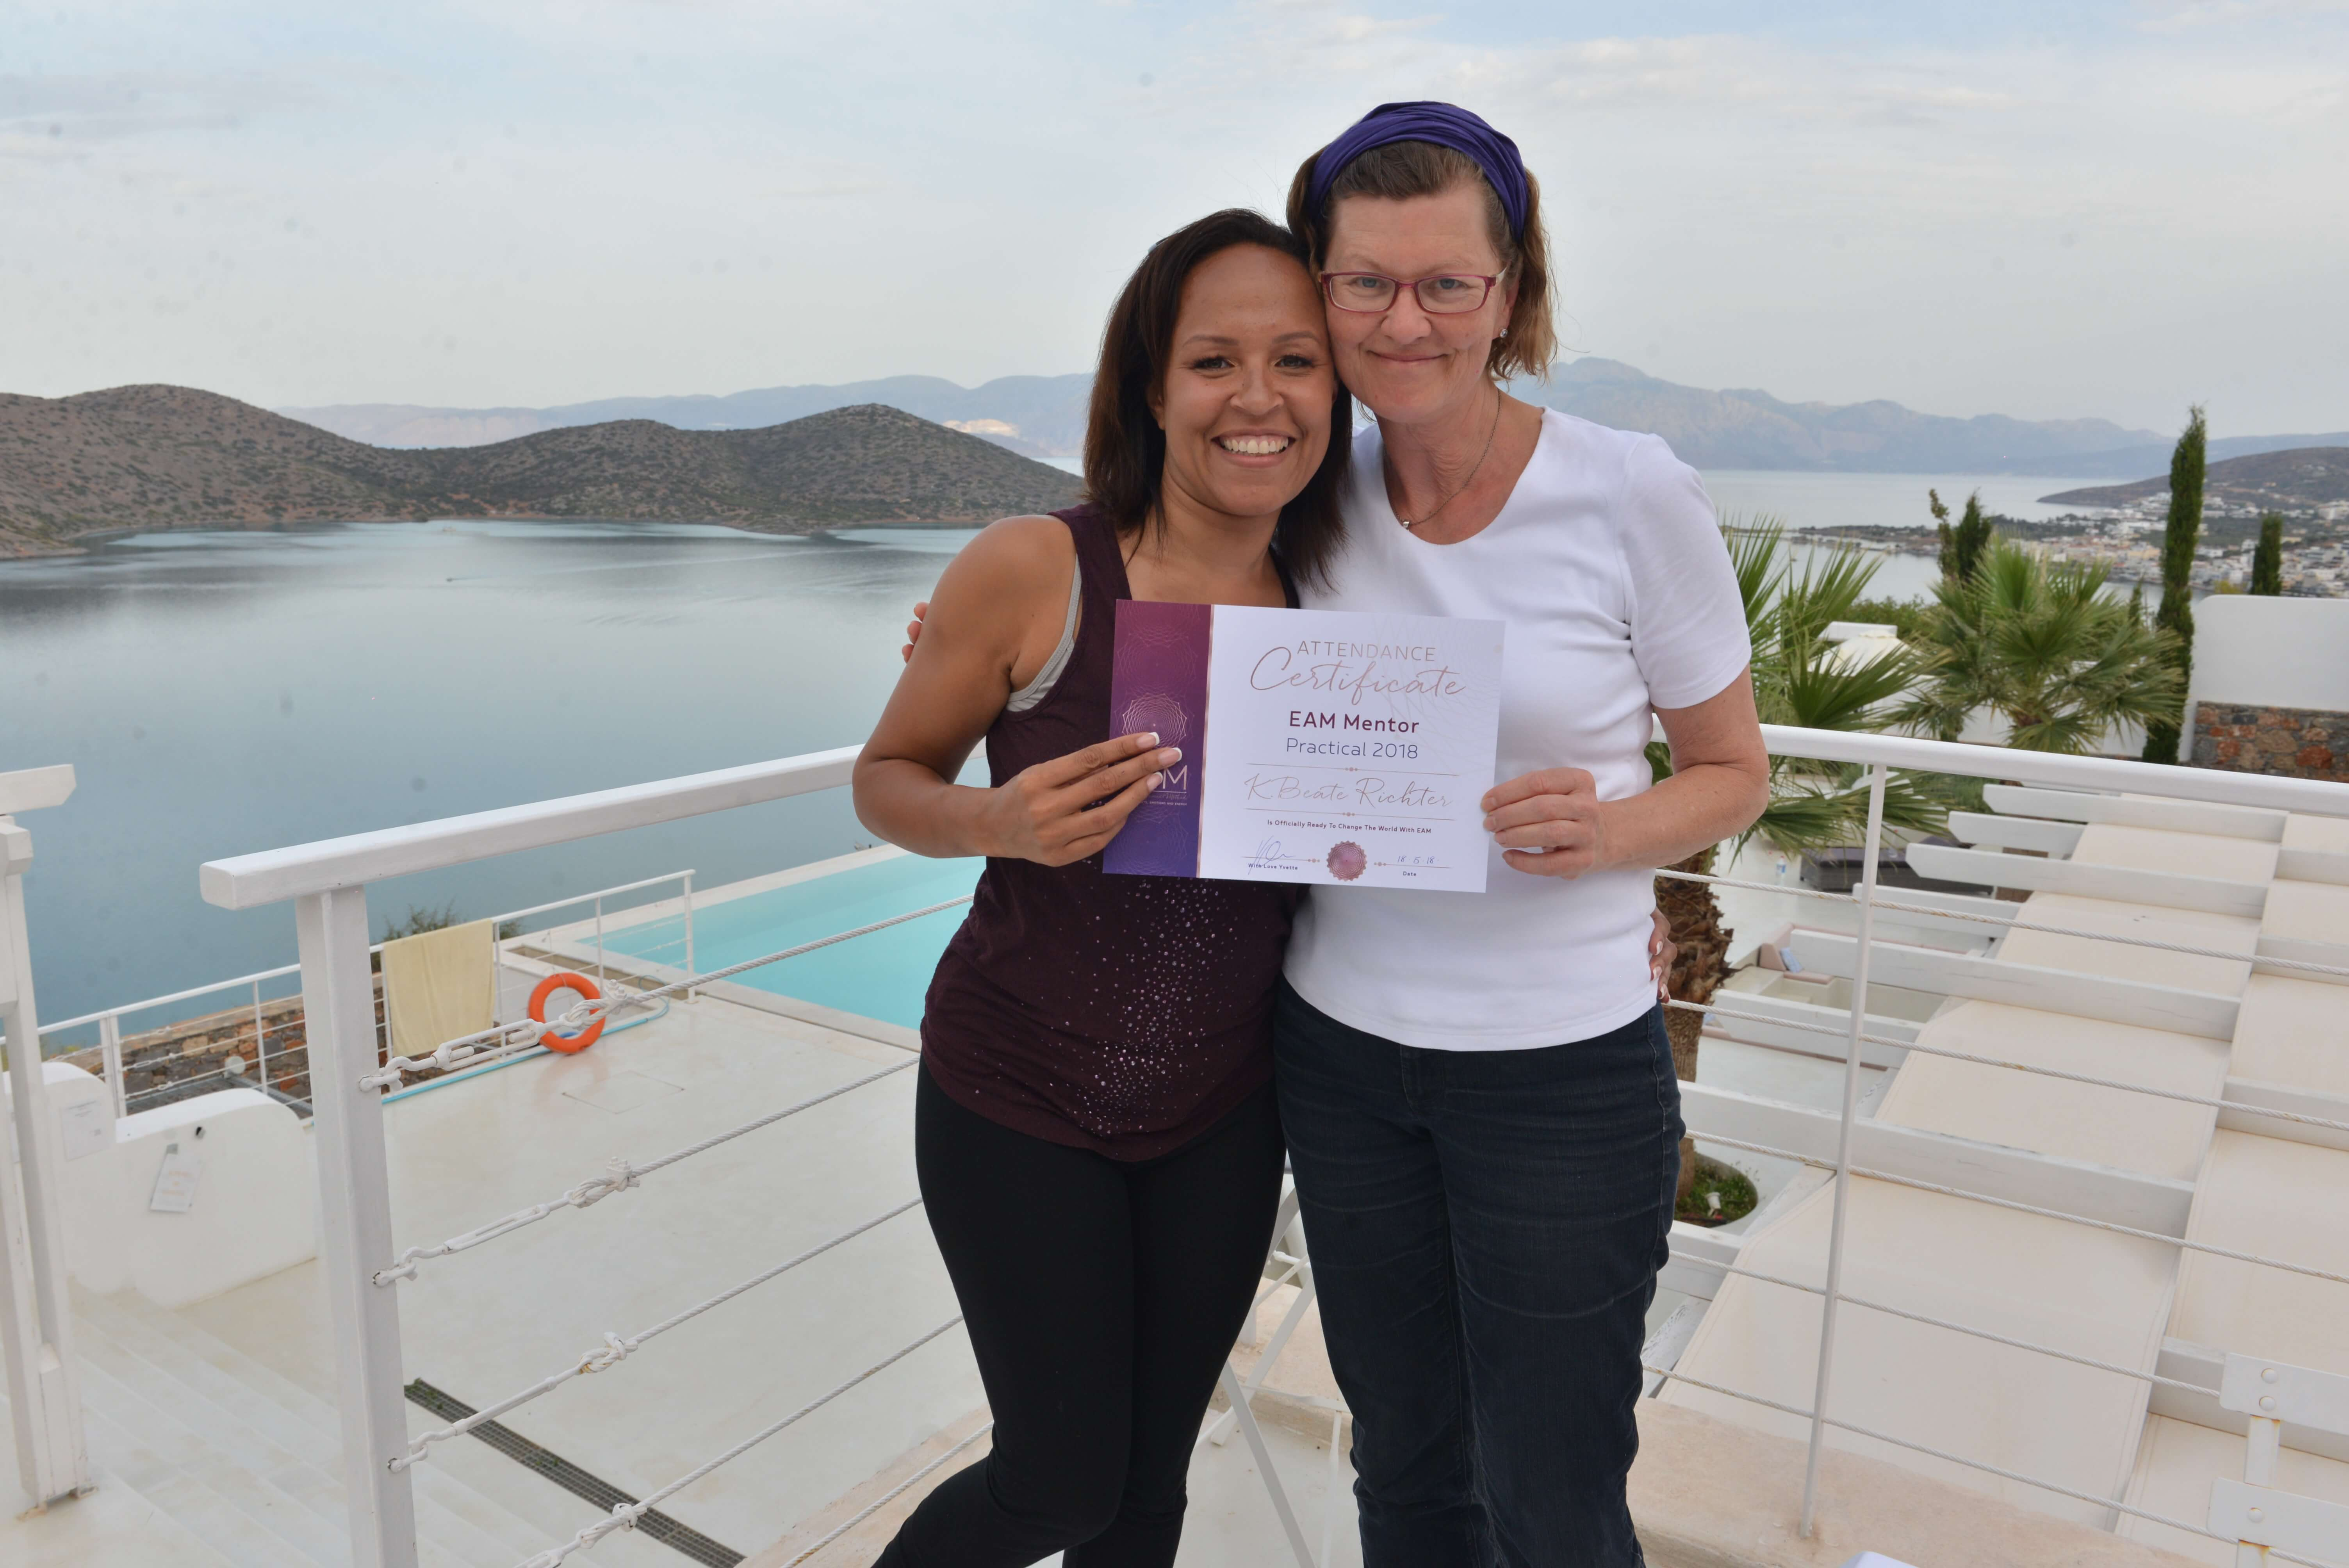 Energy Alignment Mentor mit Yvette Taylor